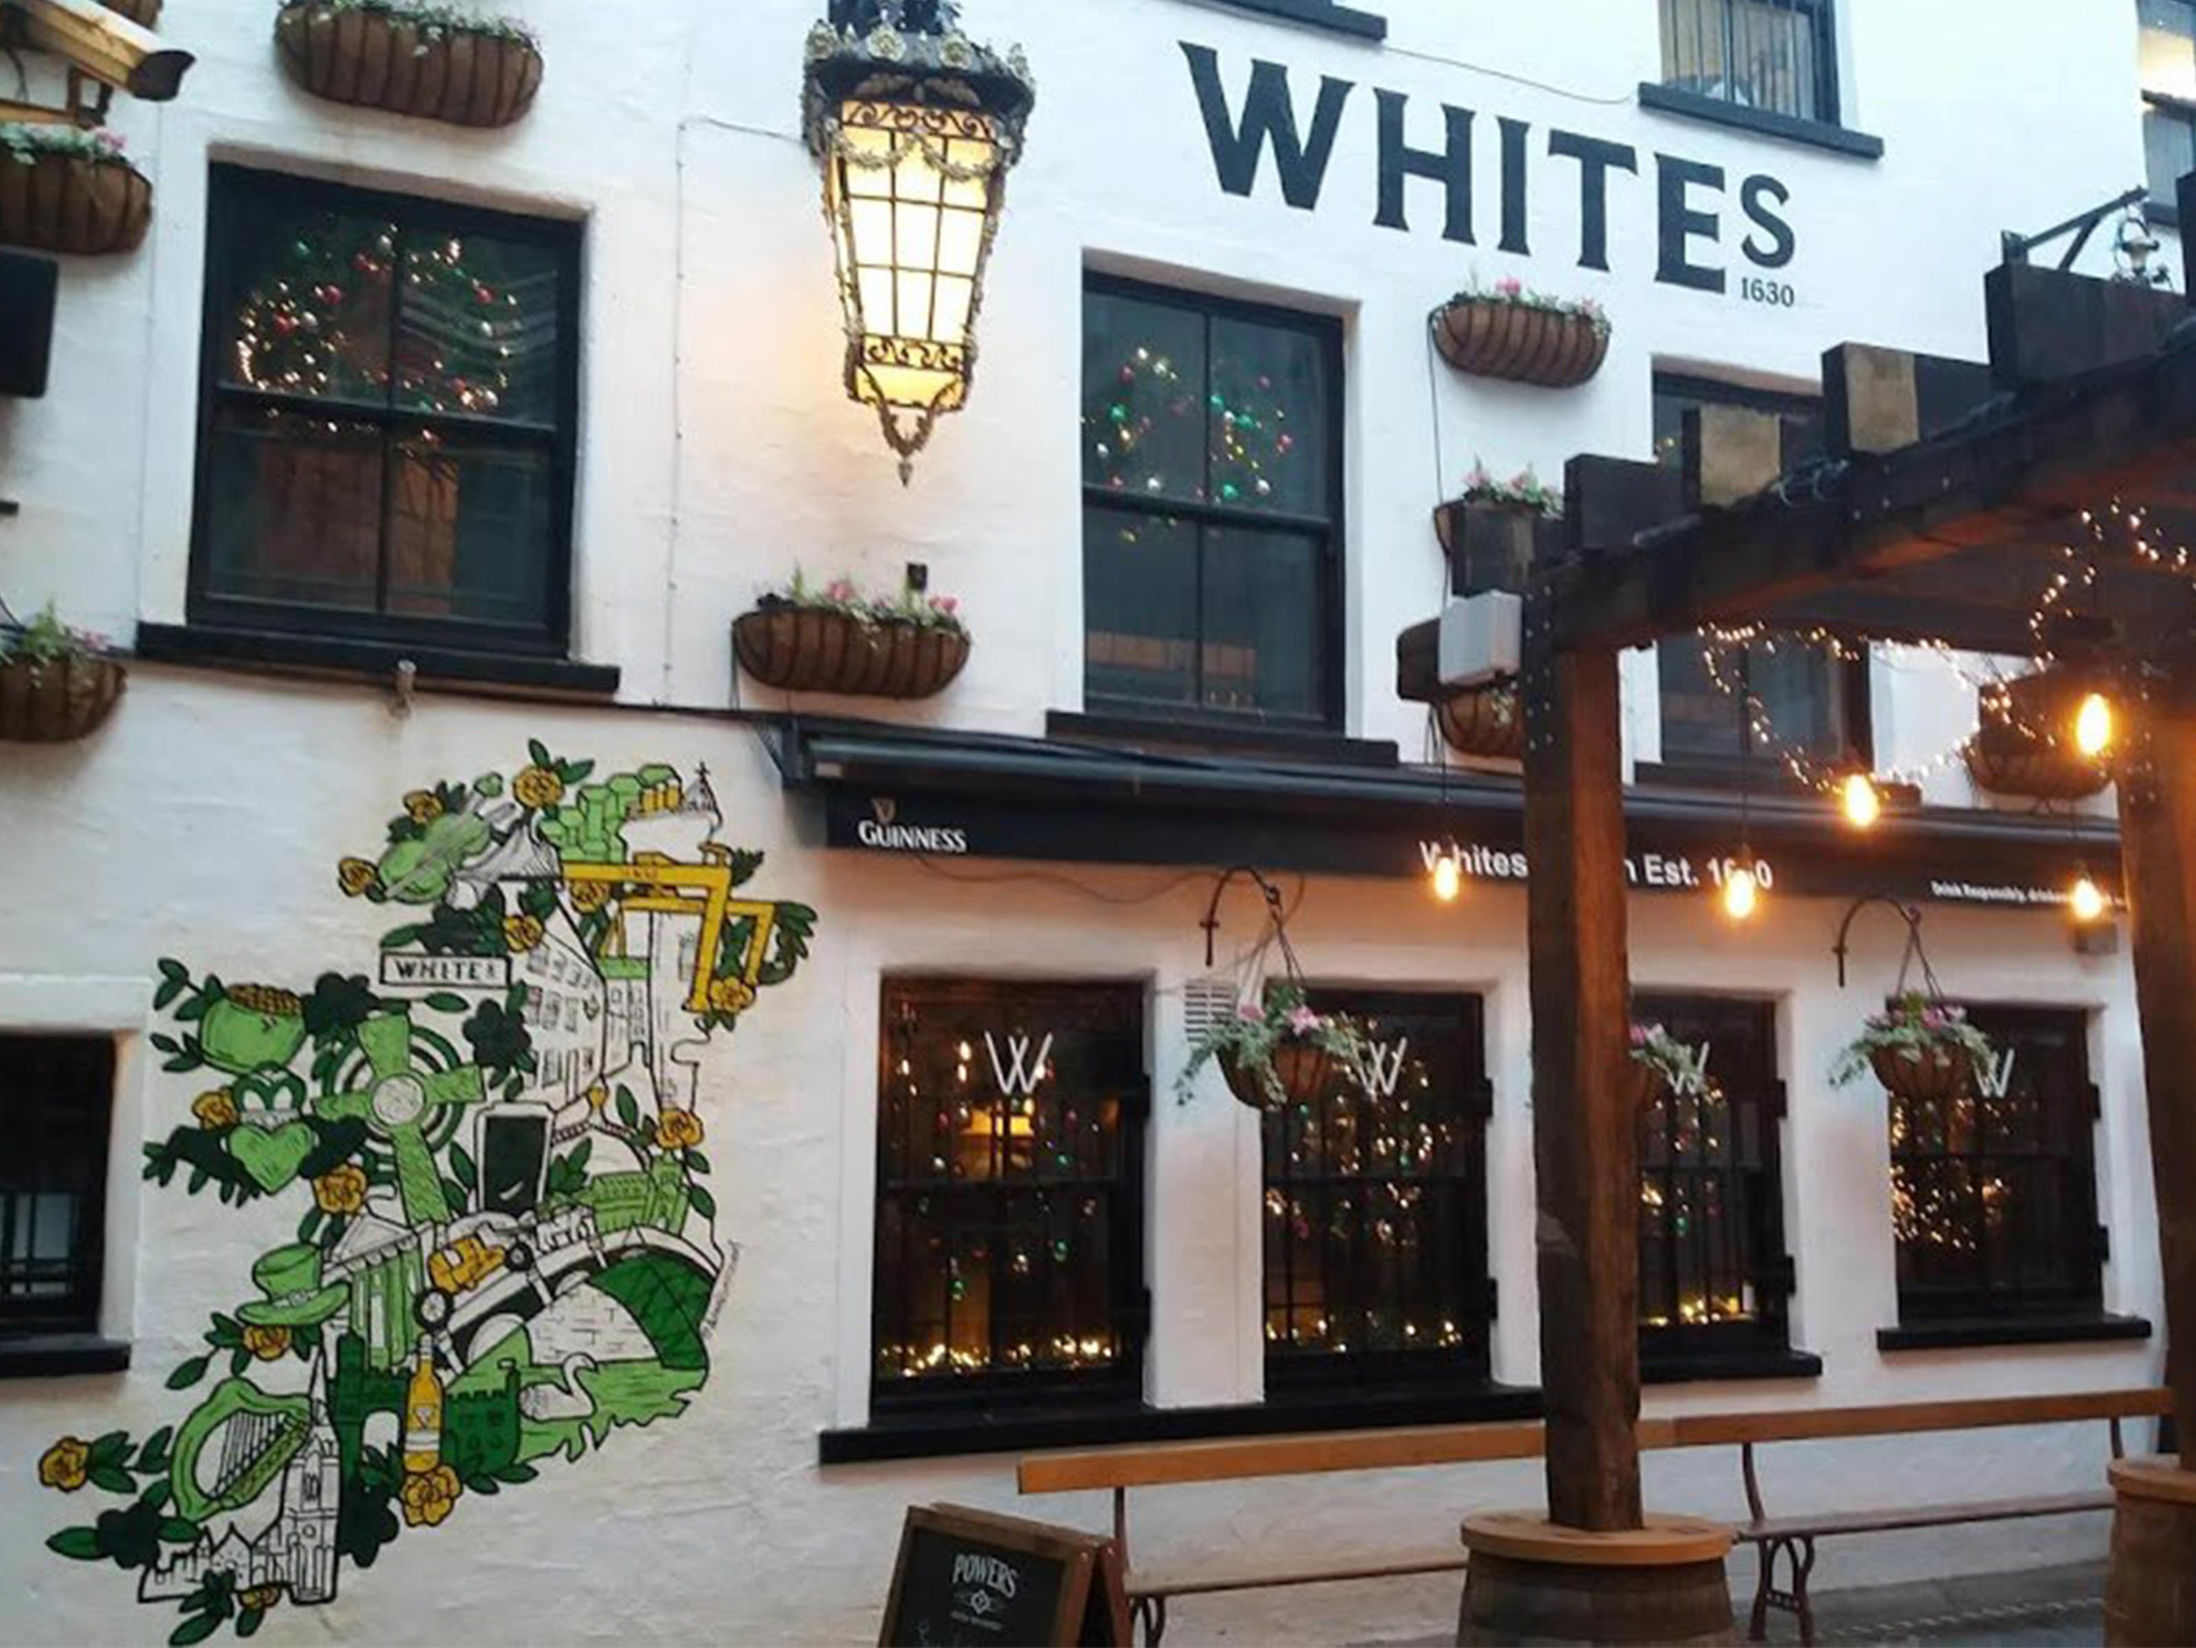 Best Pubs in Belfast - White's Tavern